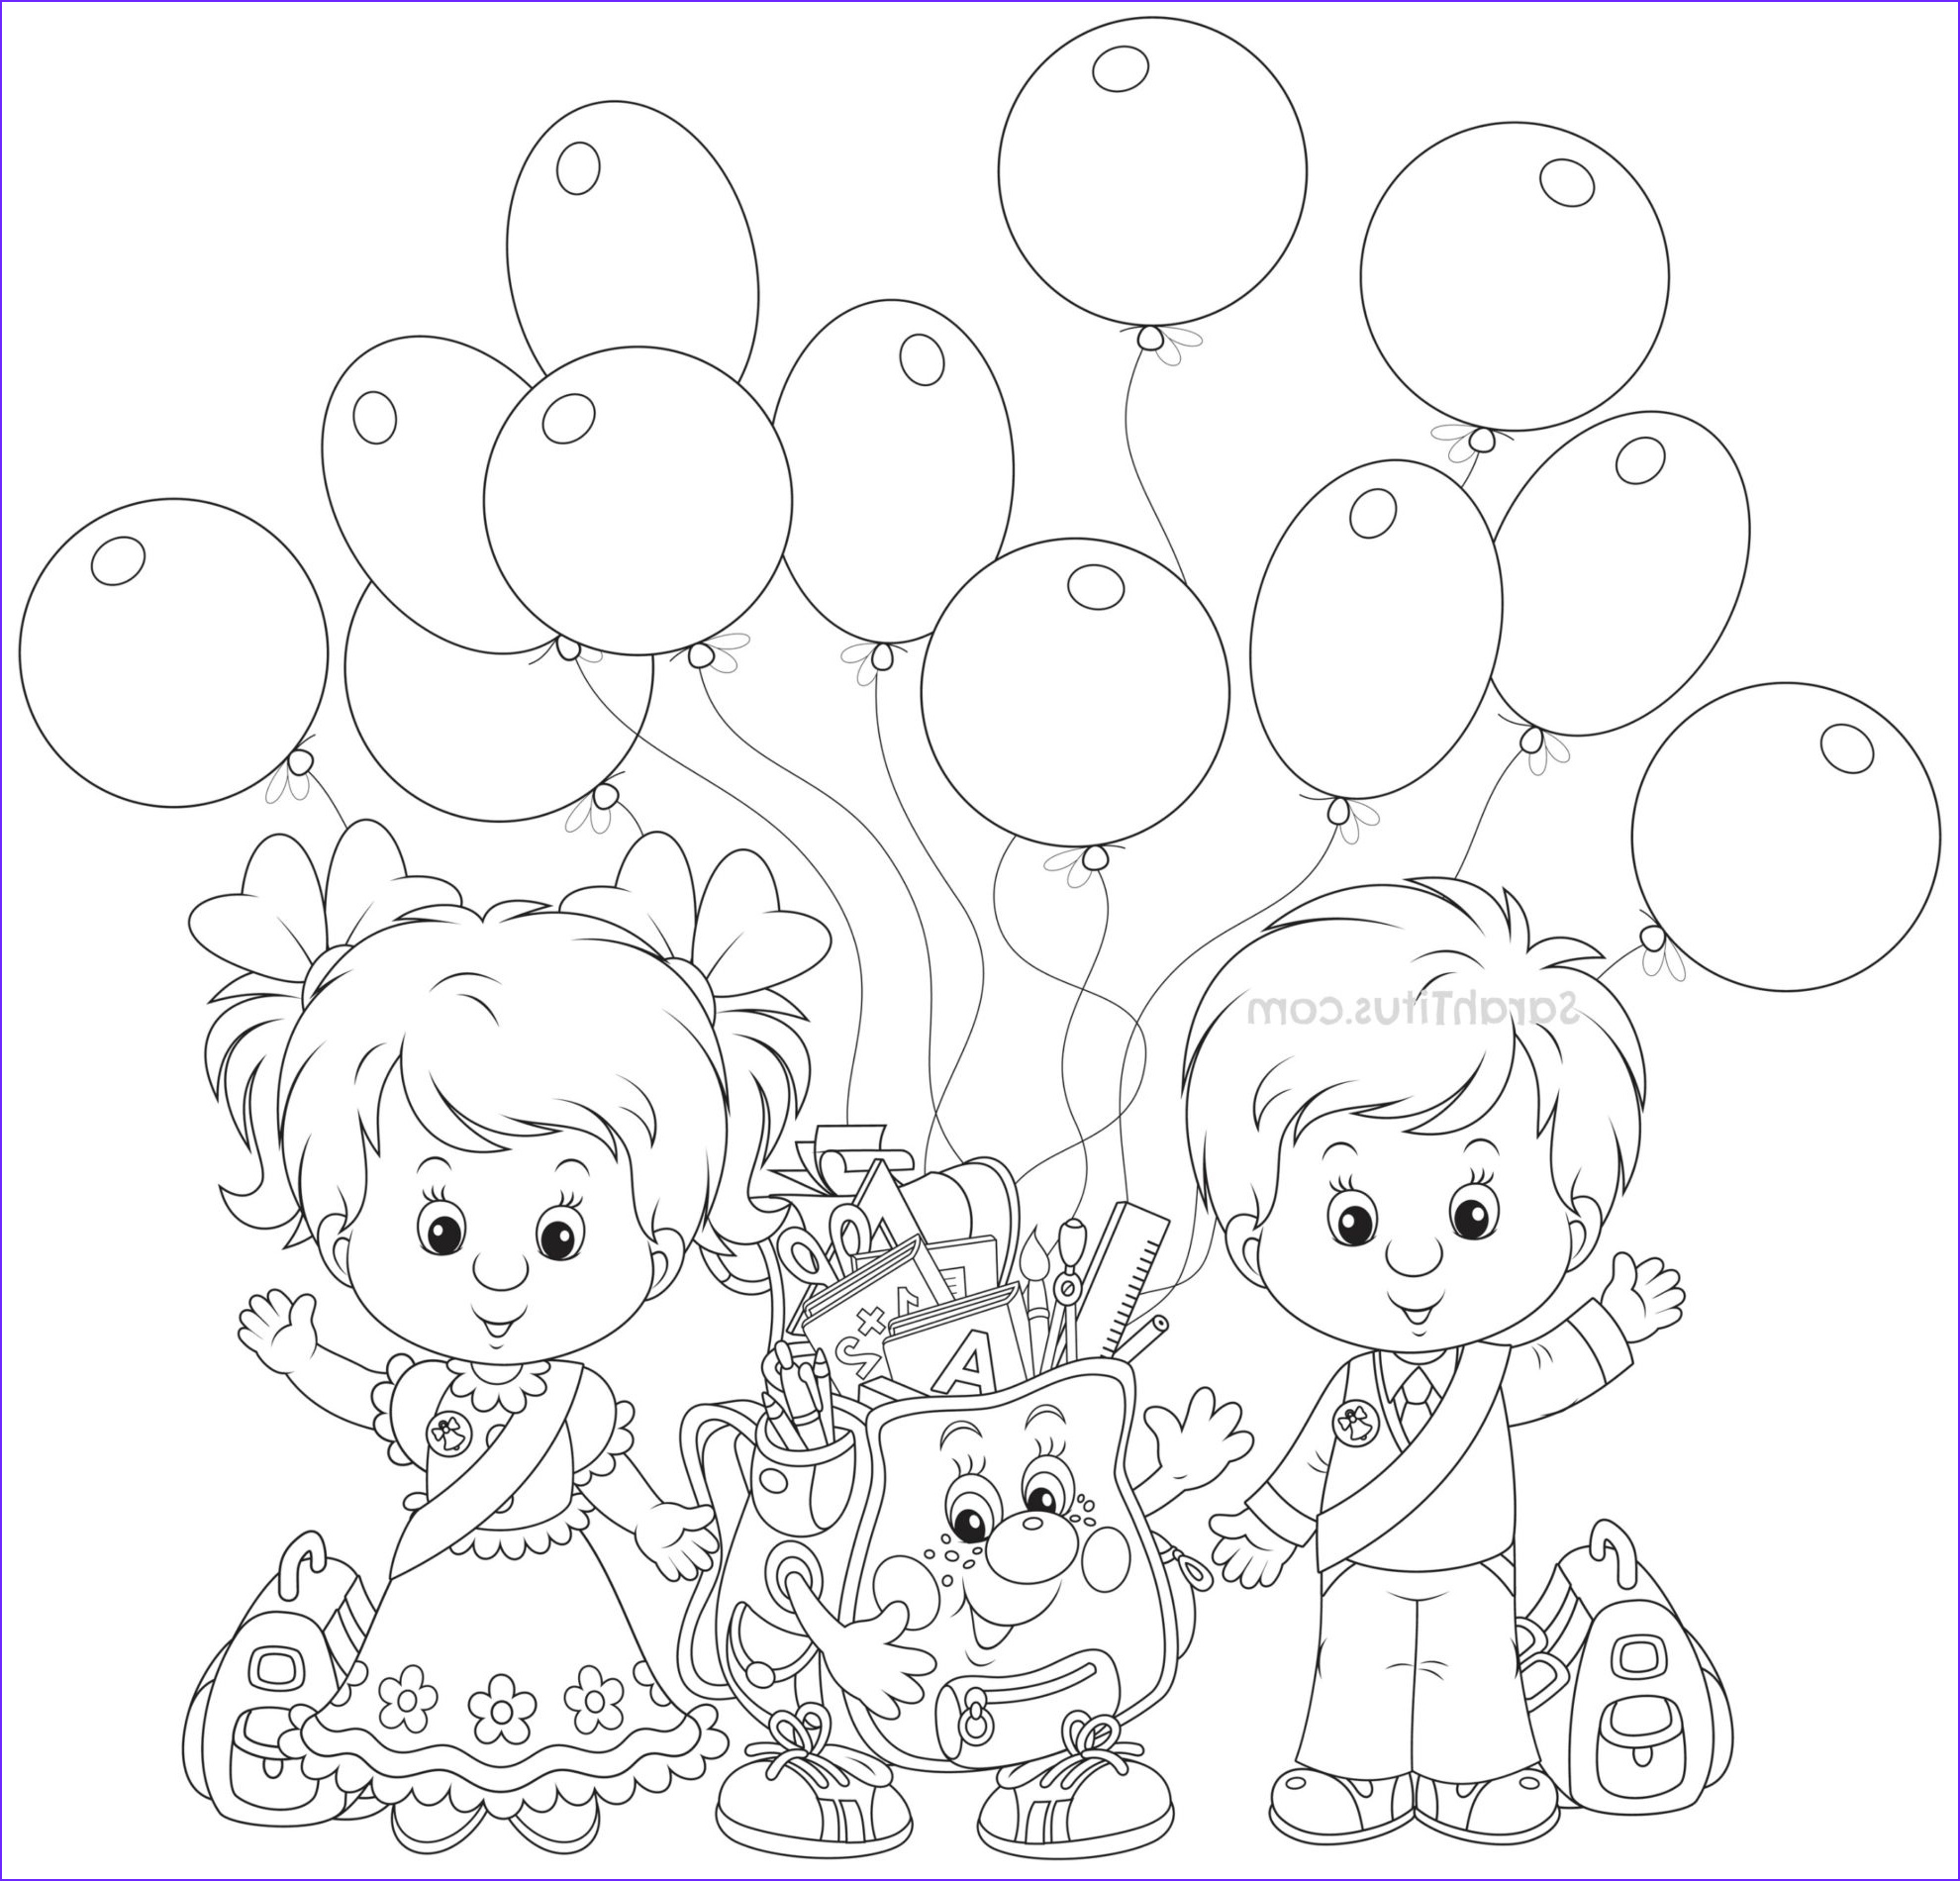 Kindergarten Coloring Sheets Luxury Photos Back to School Coloring Pages Sarah Titus